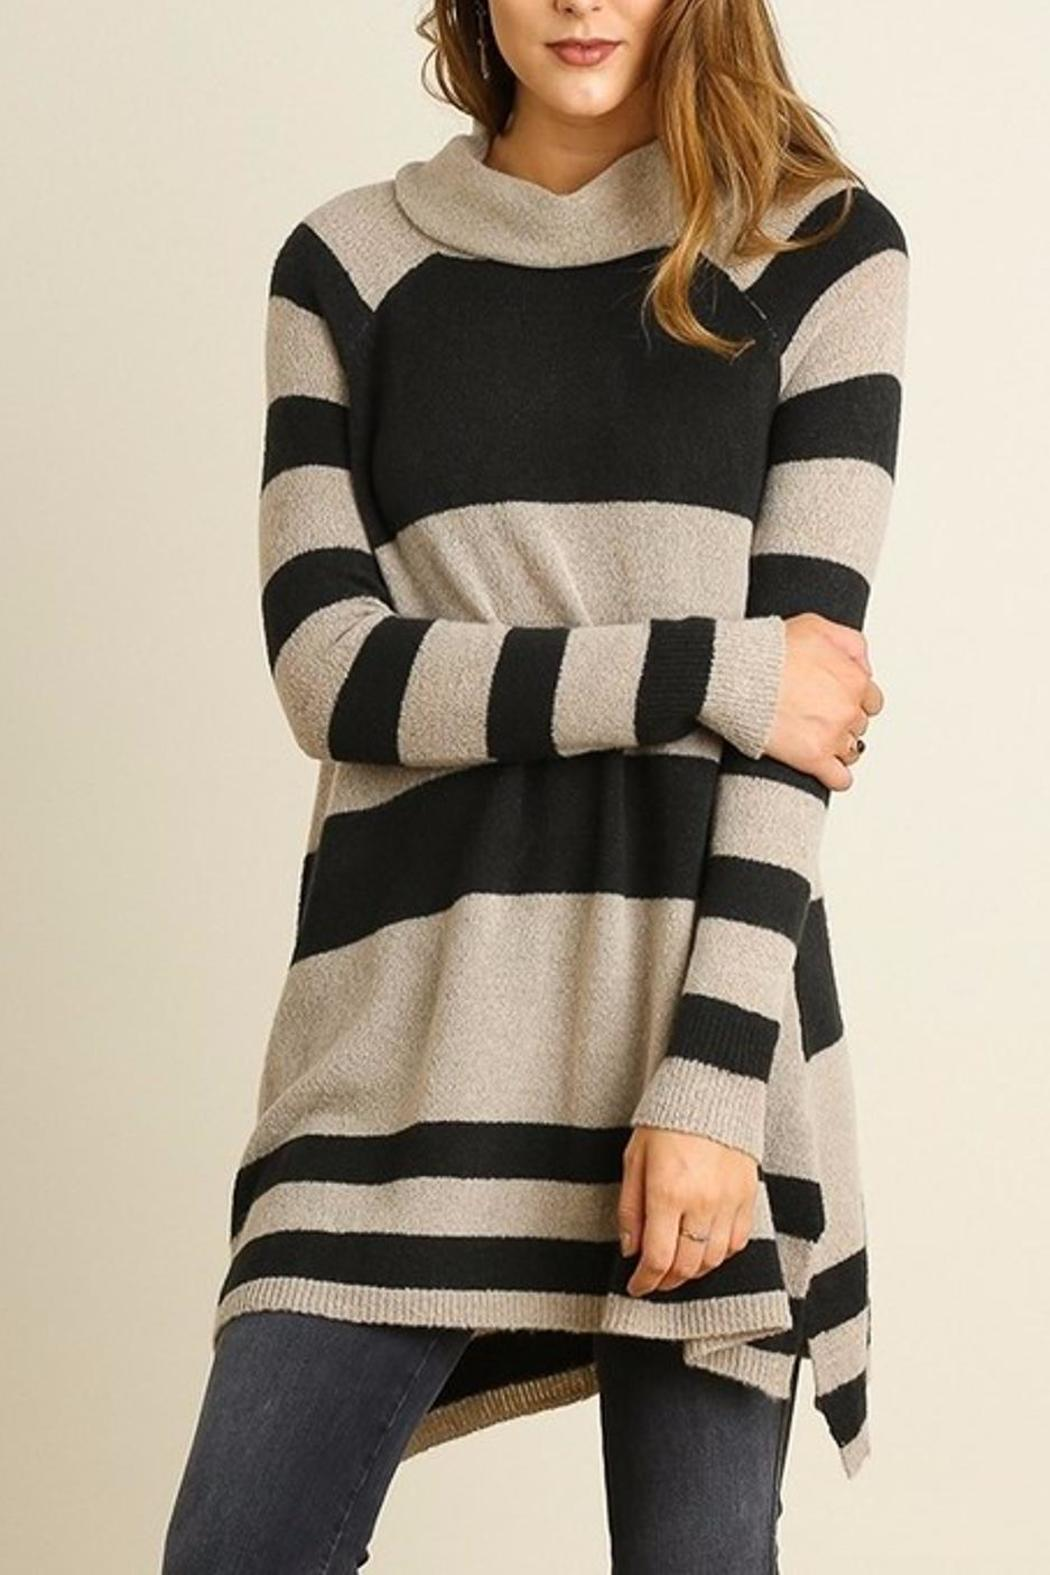 People Outfitter Stripe Knit Tunic - Main Image